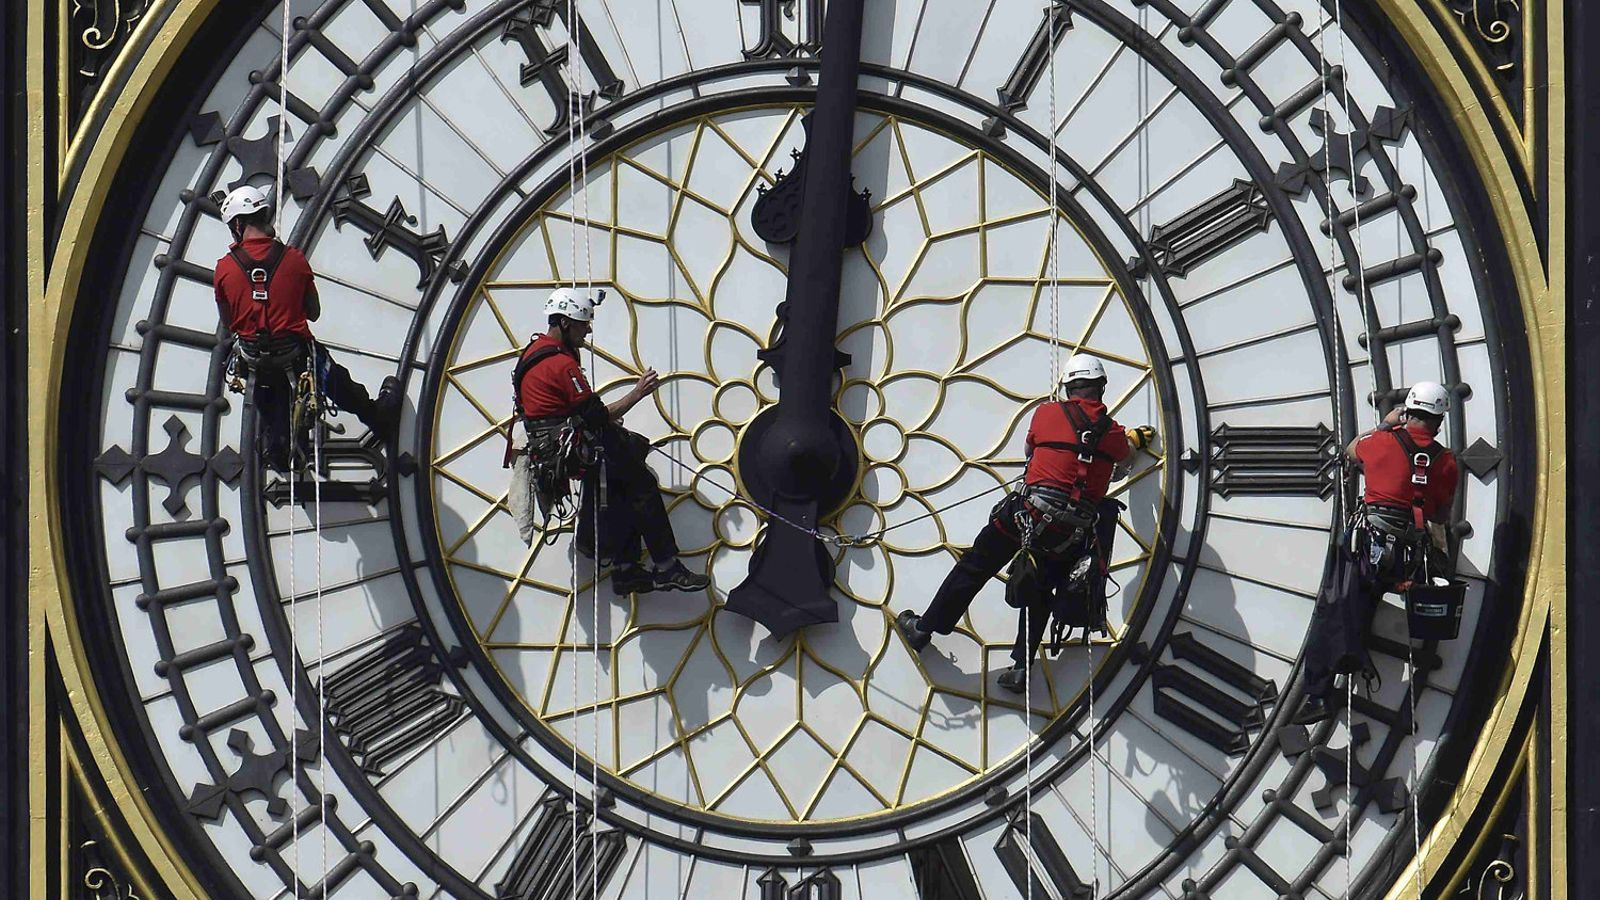 Quatre operaris netegen el Big Ben de Londres, al Regne Unit, país on l'any 1905 el constructor anglès William Willet va idear l'horari d'estiu.